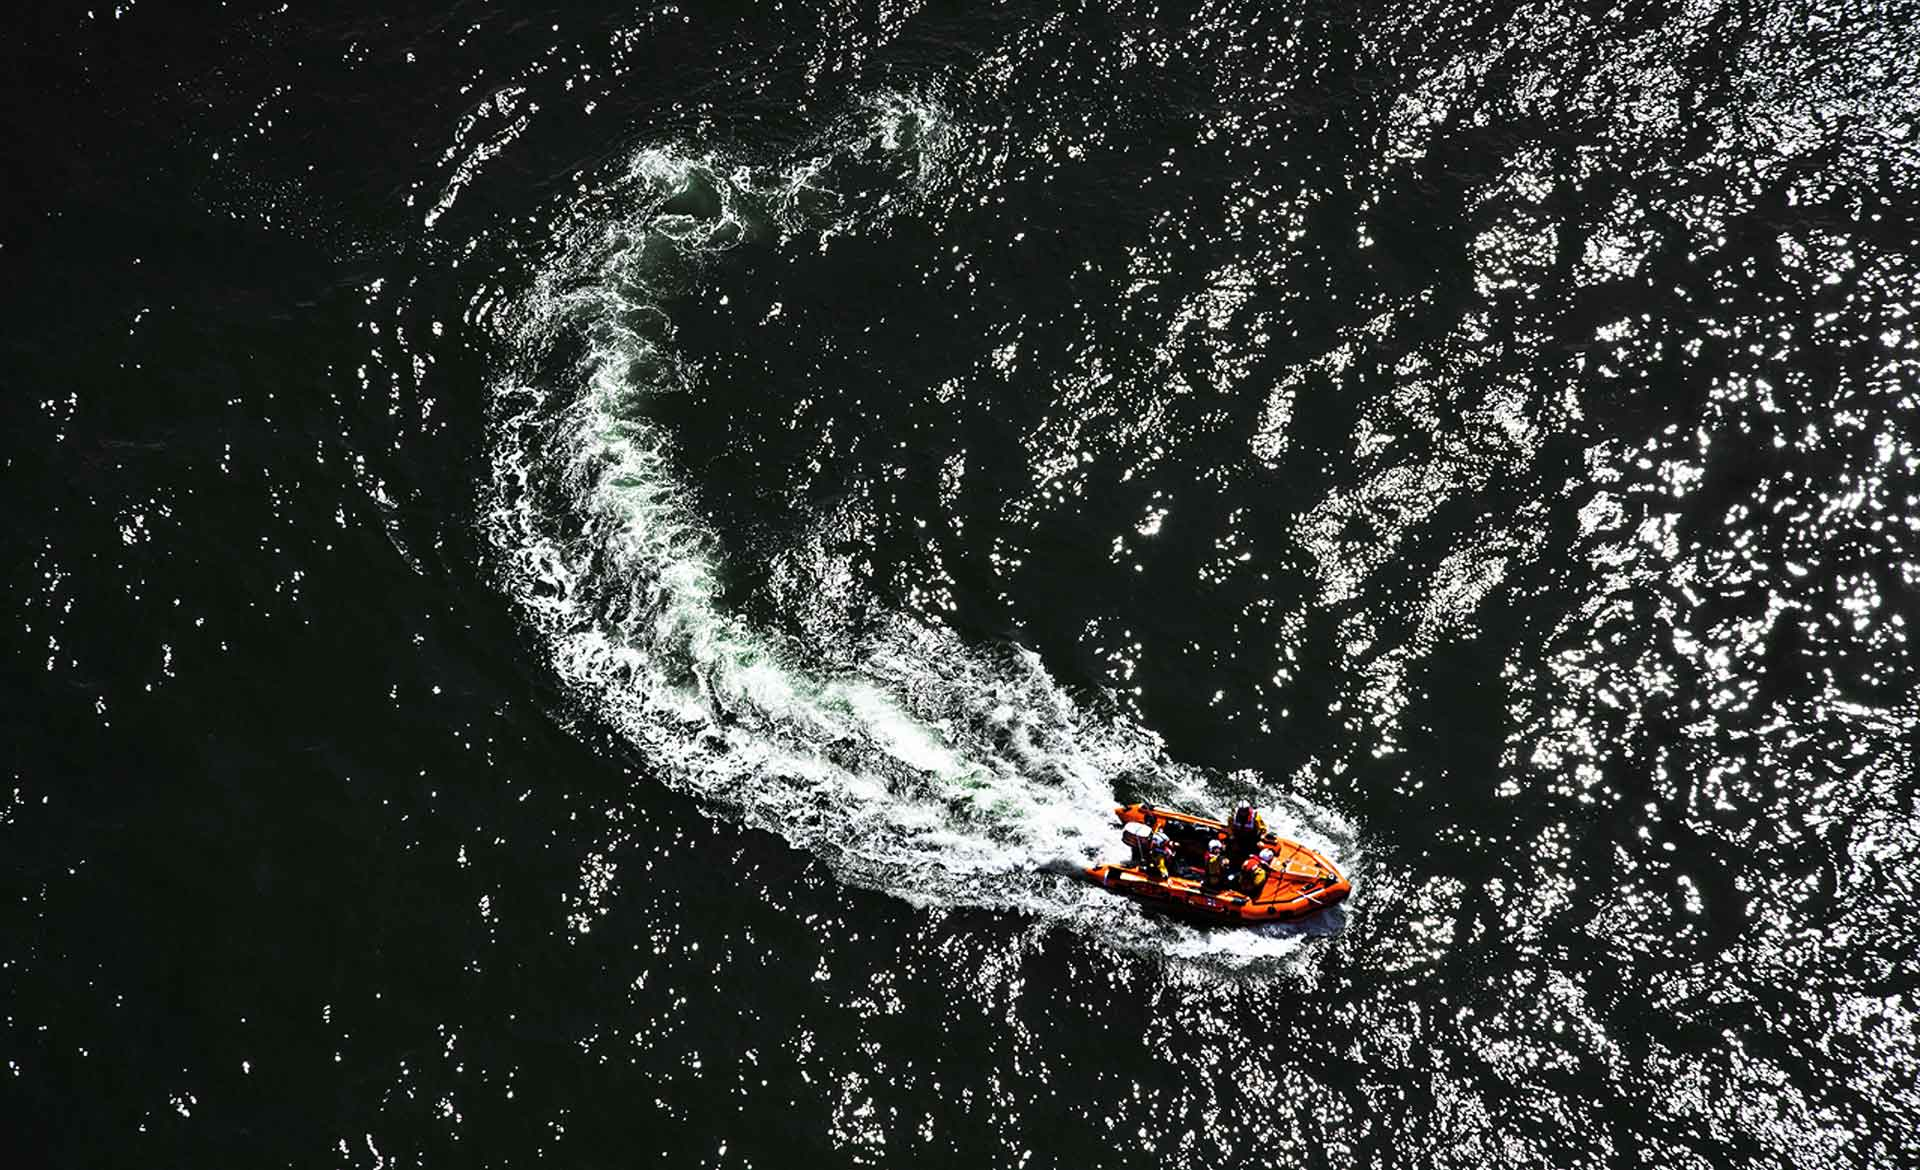 lifeboat-finisterre-goodfromyou-20.jpg